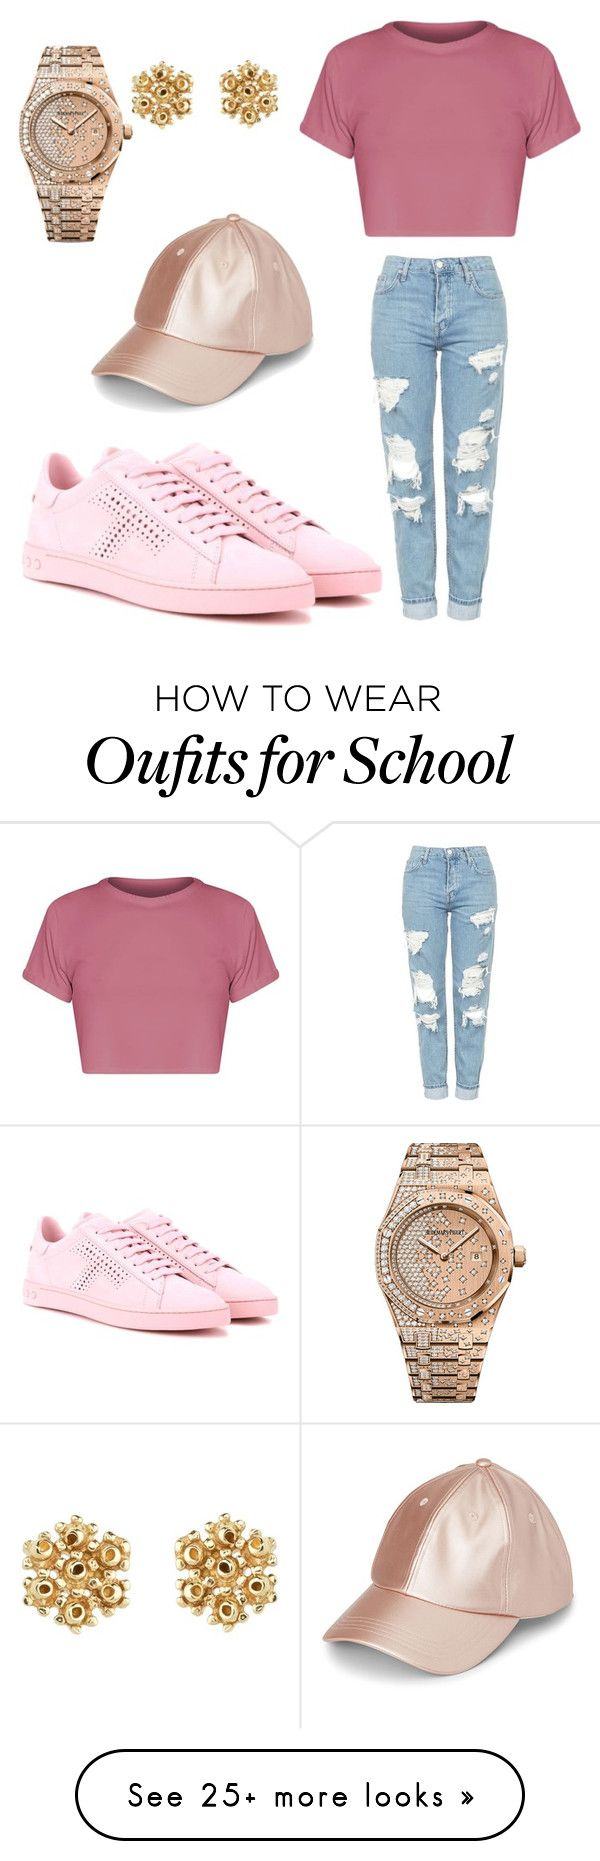 """School"" by beautyniya1 on Polyvore featuring Topshop, Tod's and Audemars Piguet"